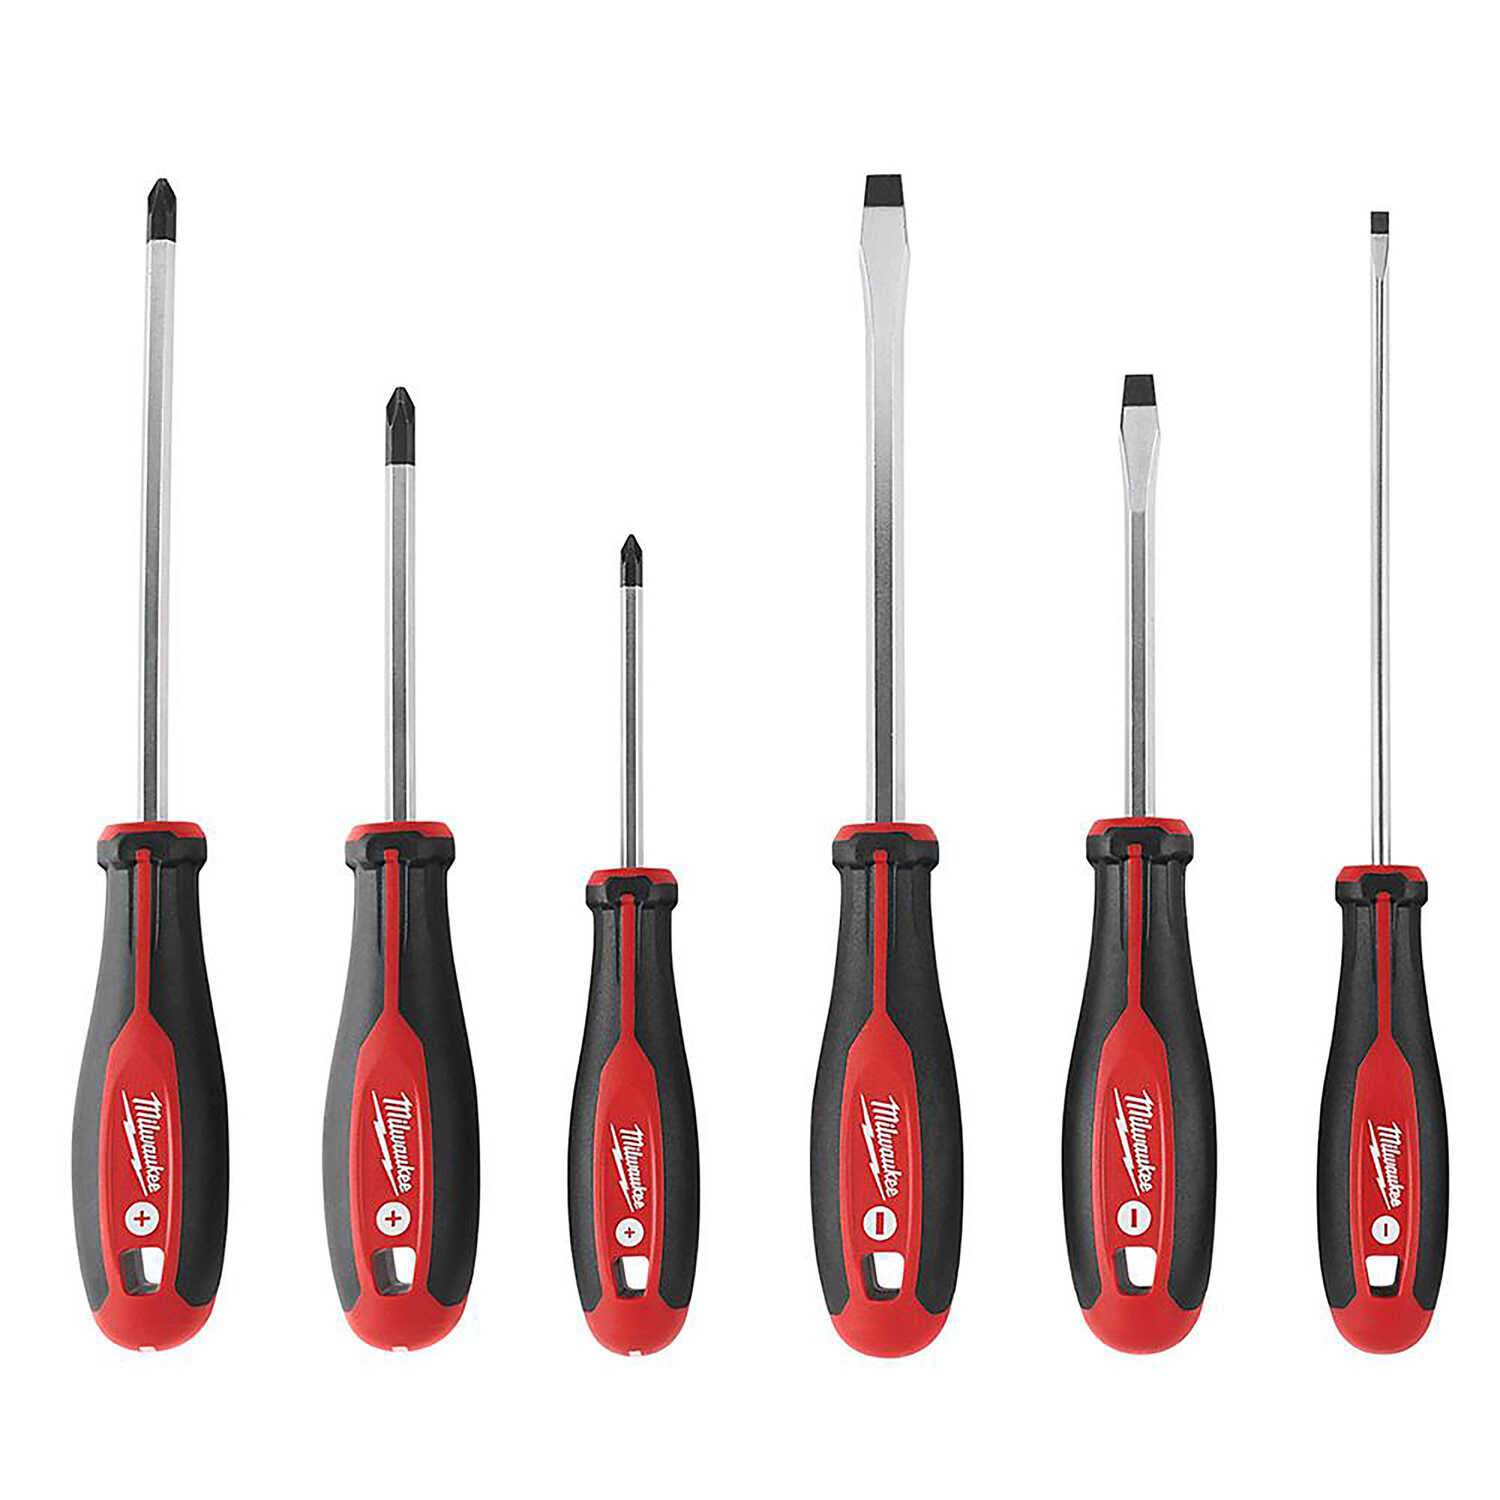 Milwaukee  6 pc. Phillips/Slotted  Screwdriver Set  10.0 in. Drop Forged Steel